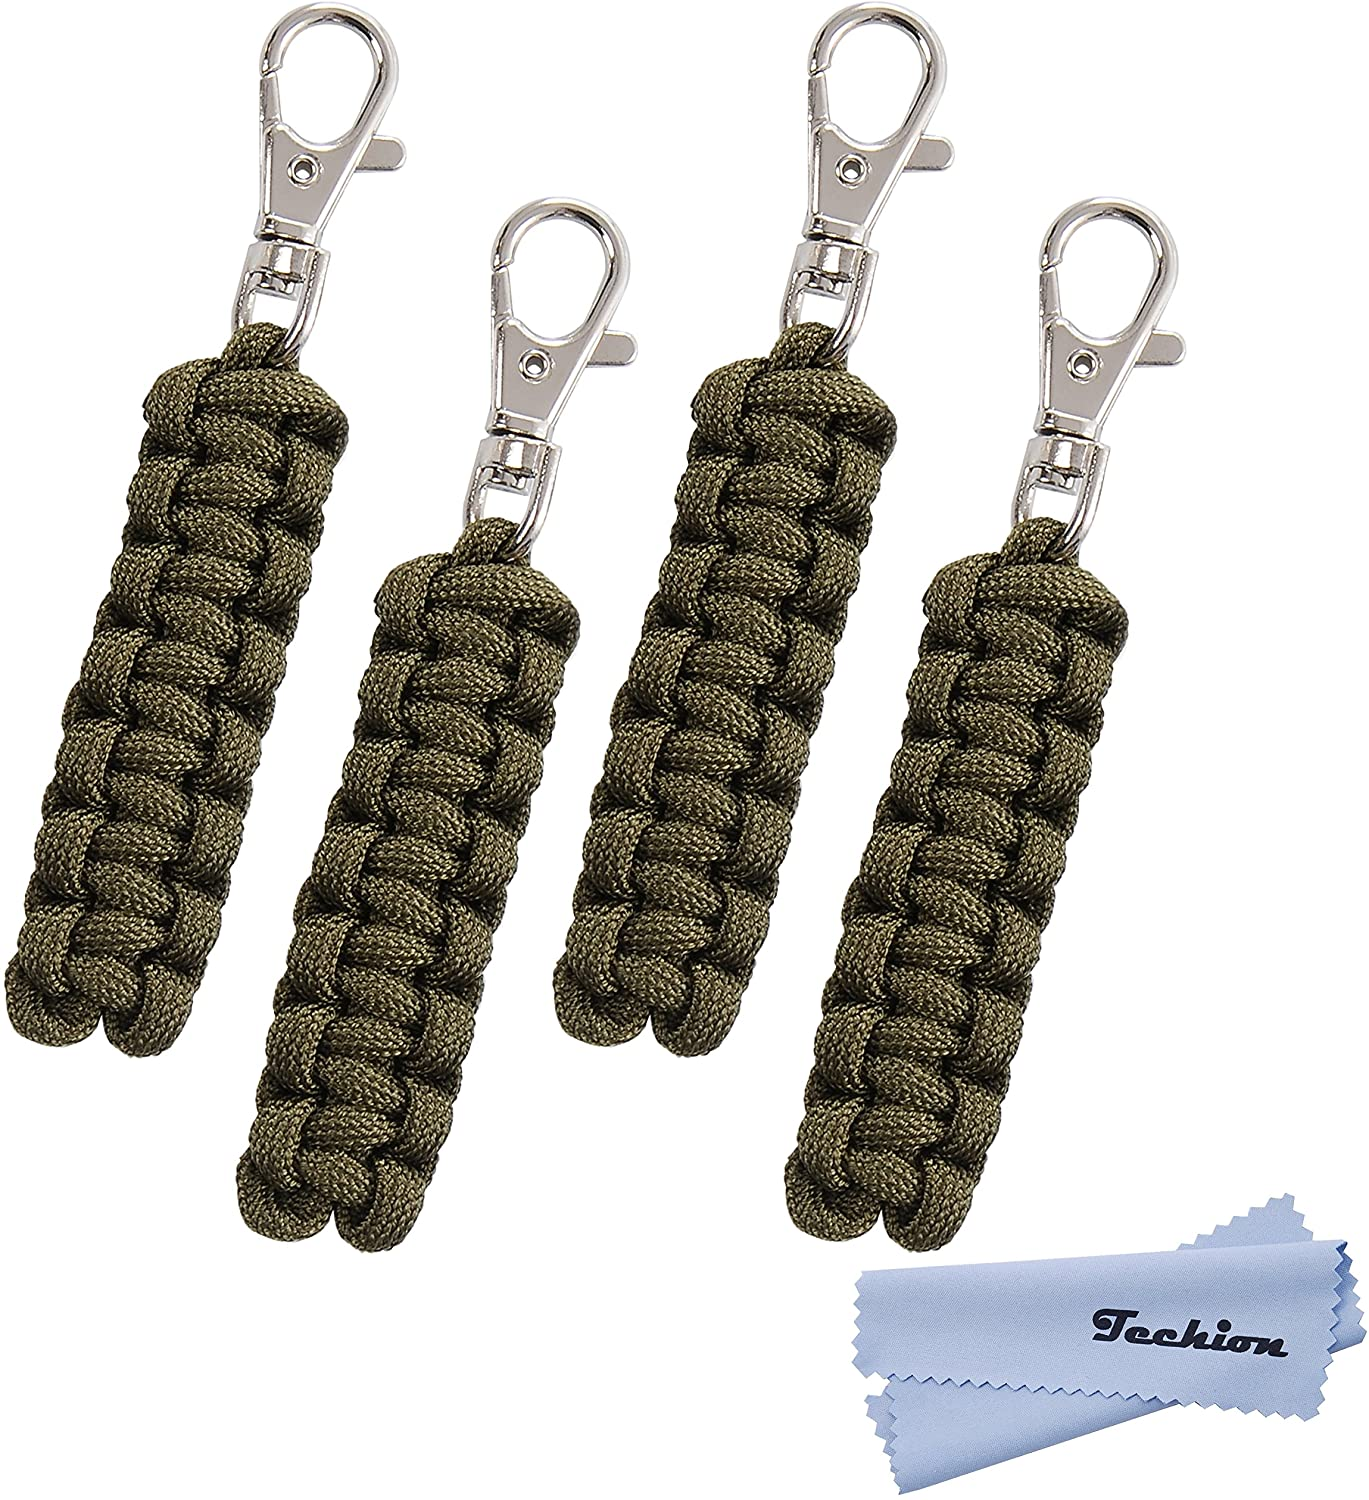 Techion 4 Pack Paracord Zipper Pulls for Backpacks, Tents, Trolley Cases, Traveling Cases, Jackets and Many Other Items That with Zippers